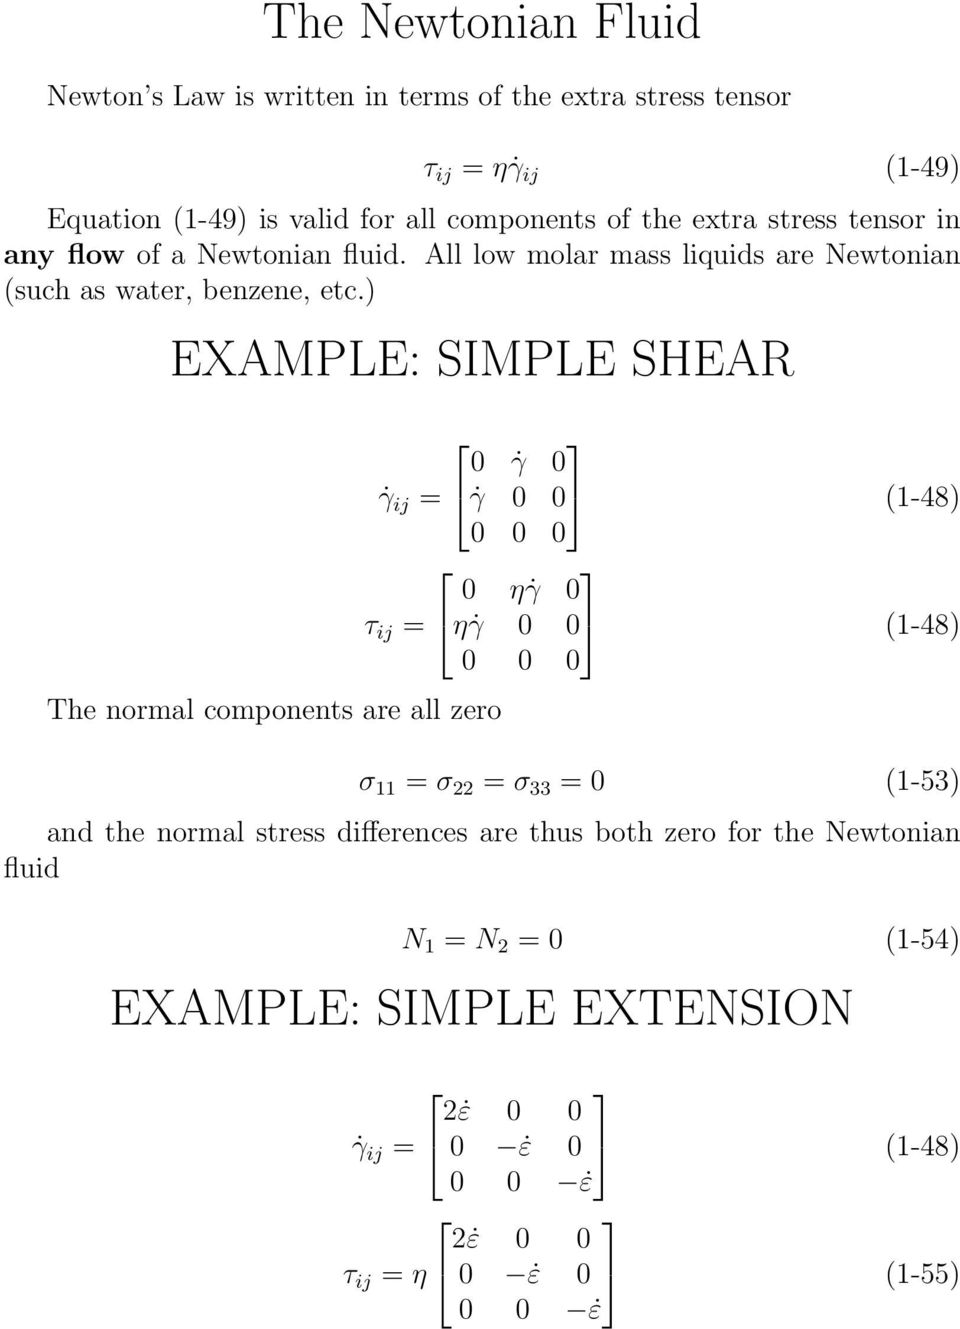 ) EXAMPLE: SIMPLE SHEAR The normal components are all zero γ γ ij = γ (1-48) η γ τ ij = η γ (1-48) σ 11 = σ 22 = σ 33 = (1-53) and the normal